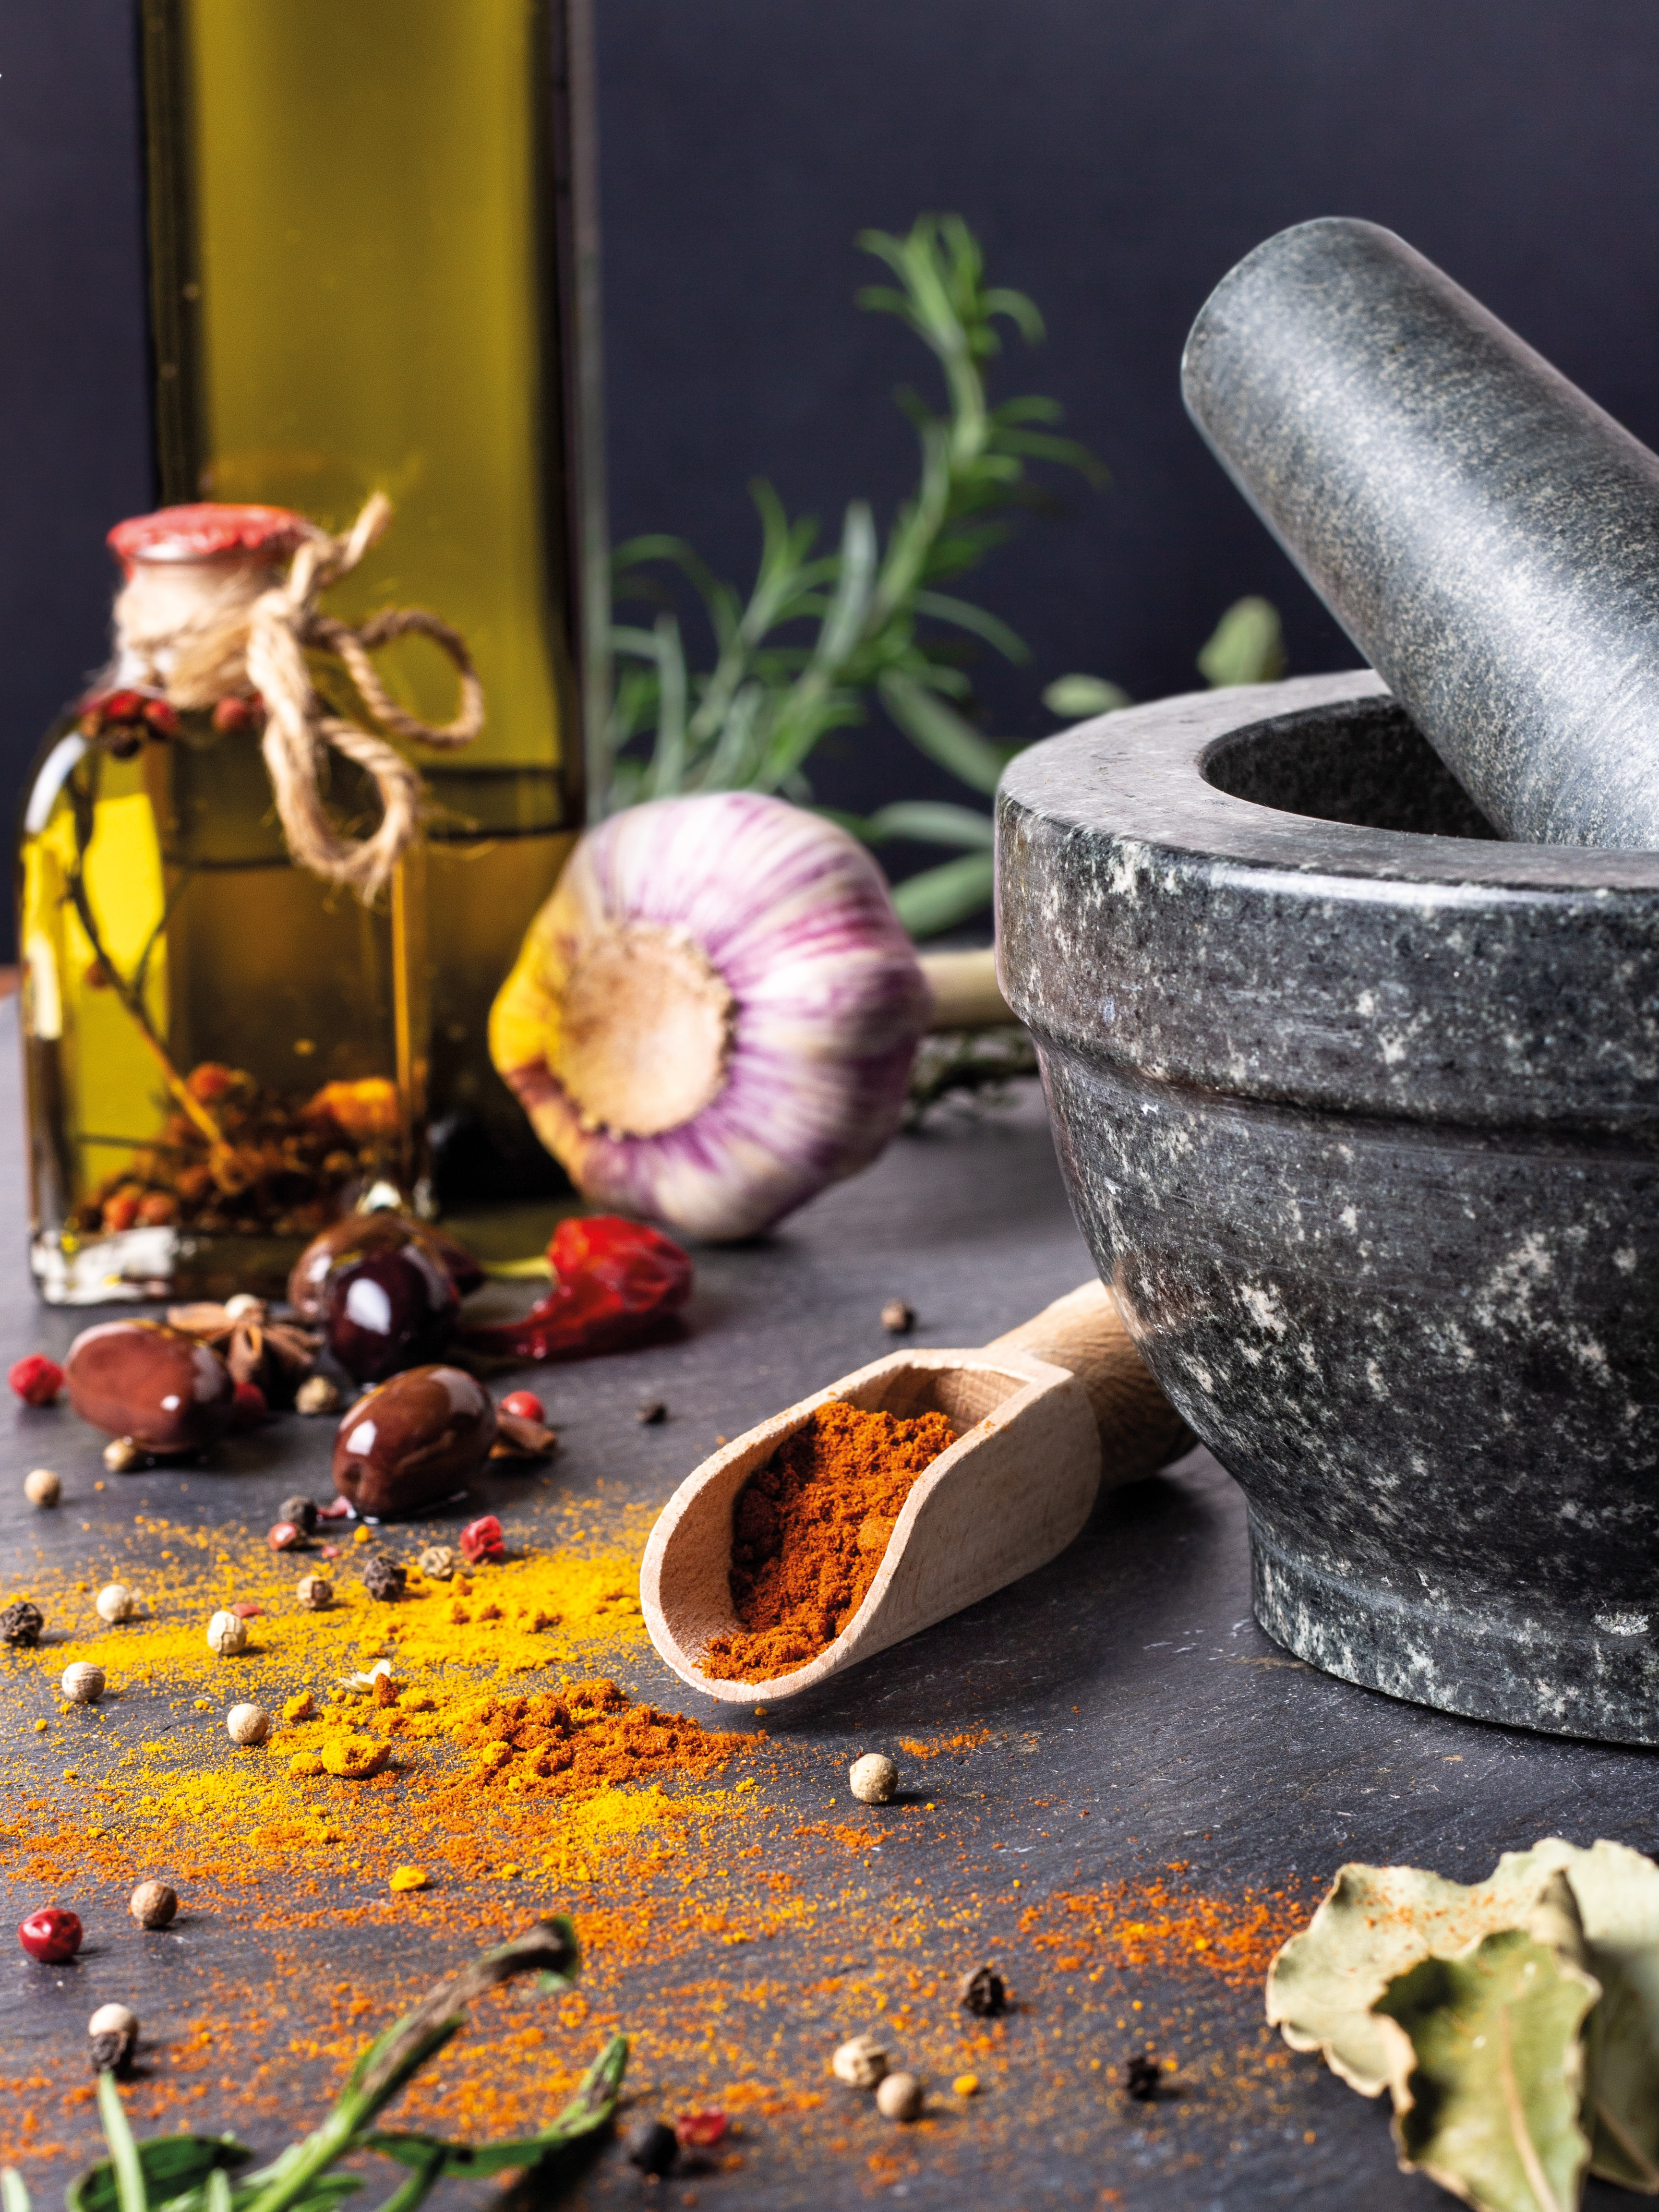 onion and black peppers beside black mortar and pestle